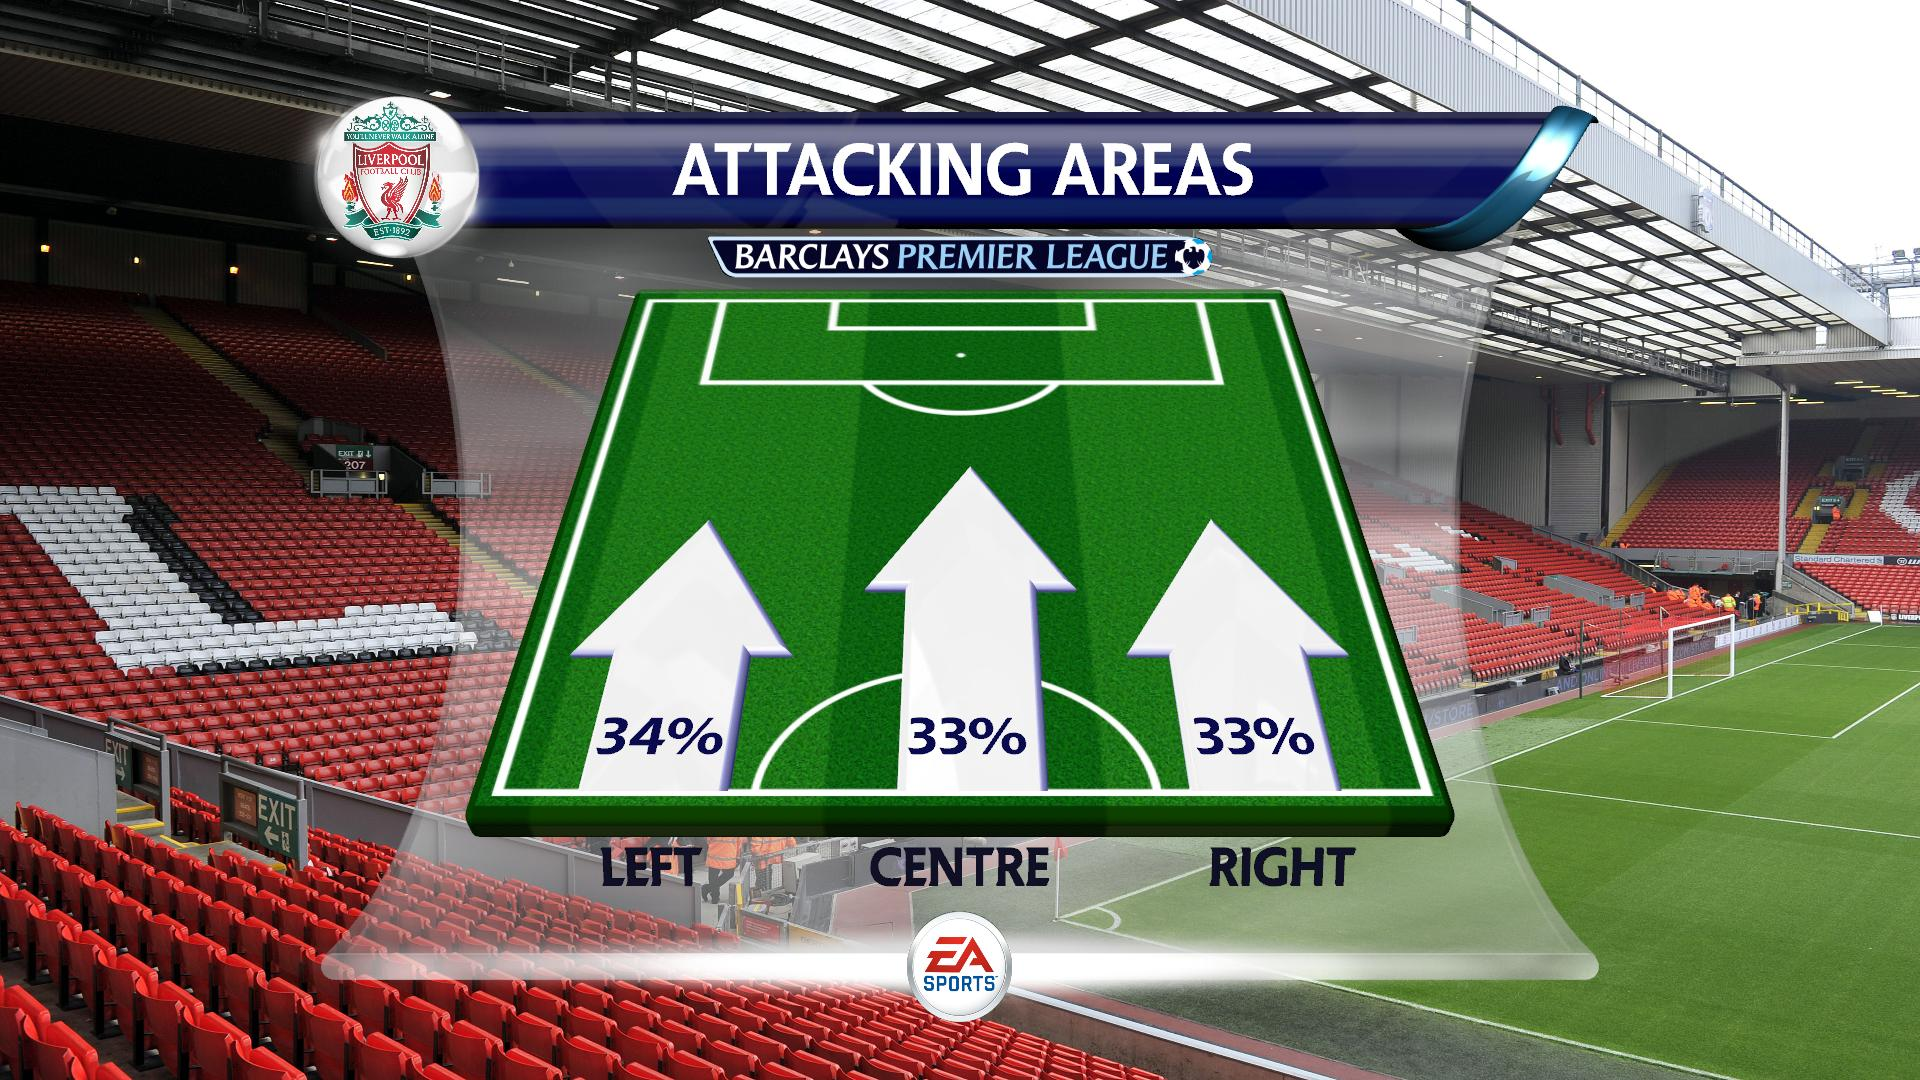 The contract, encompassing all BBC coverage of live football matches and related studio programming, calls for deltatre to collate match results data and power TV graphics.